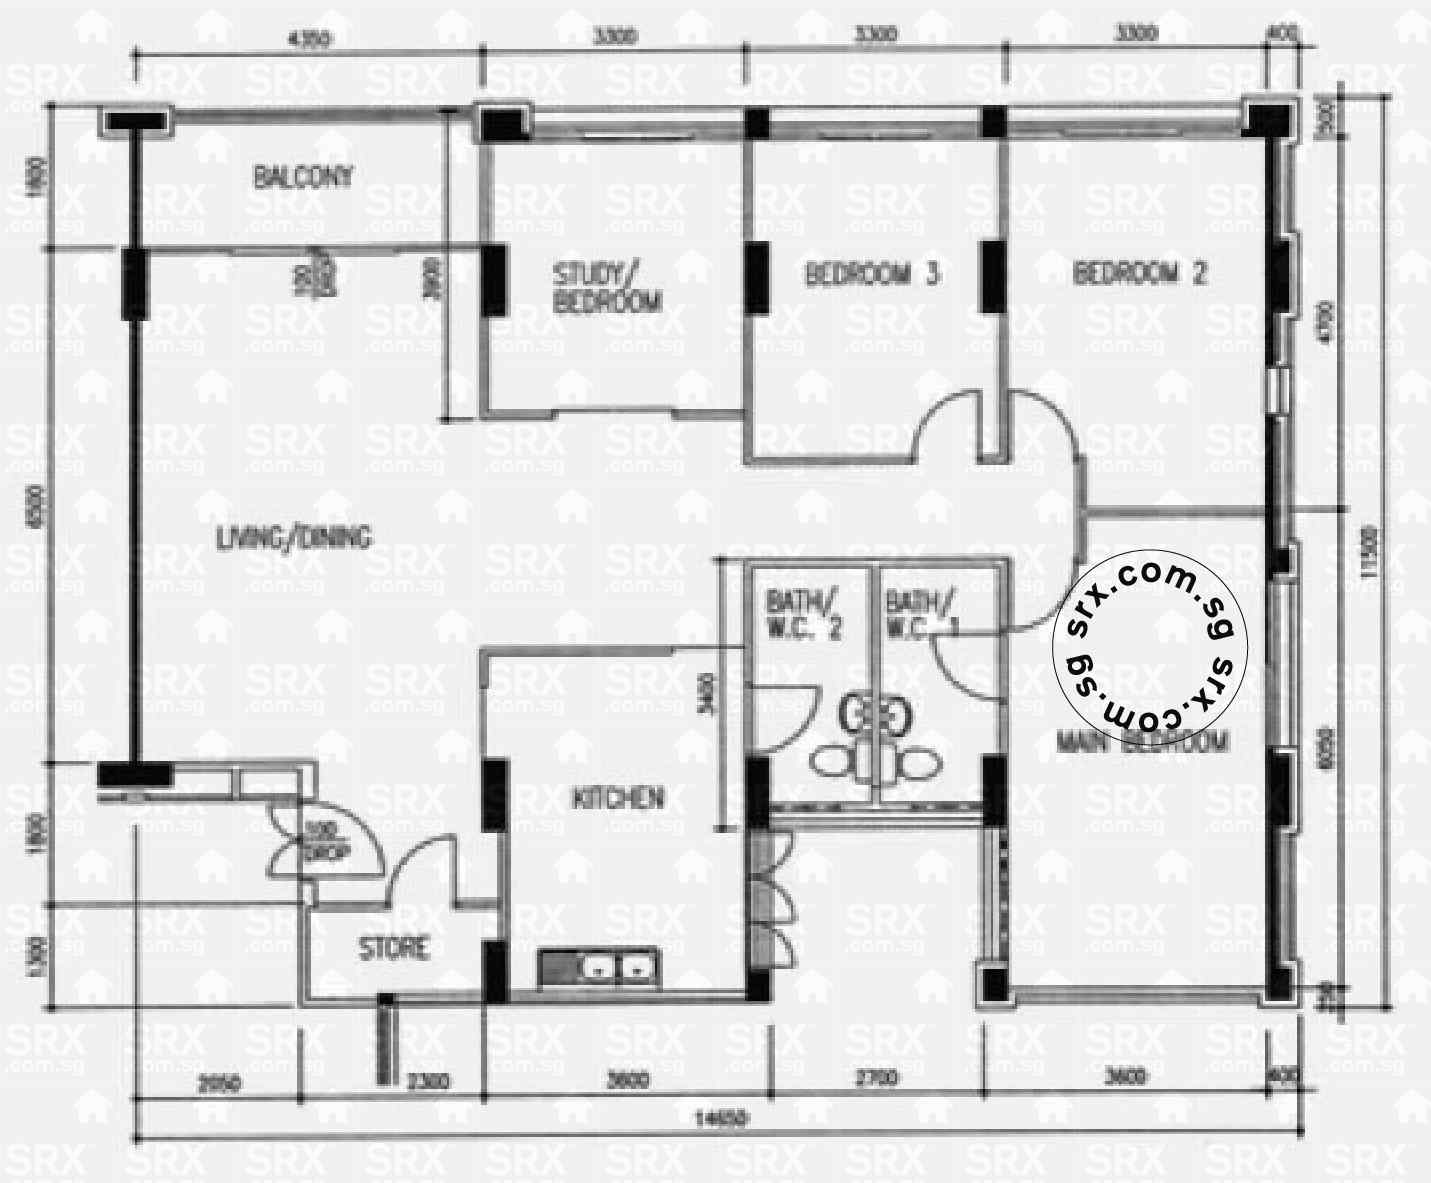 Floor plans for 550 hougang street 51 s 530550 hdb for Plan 51